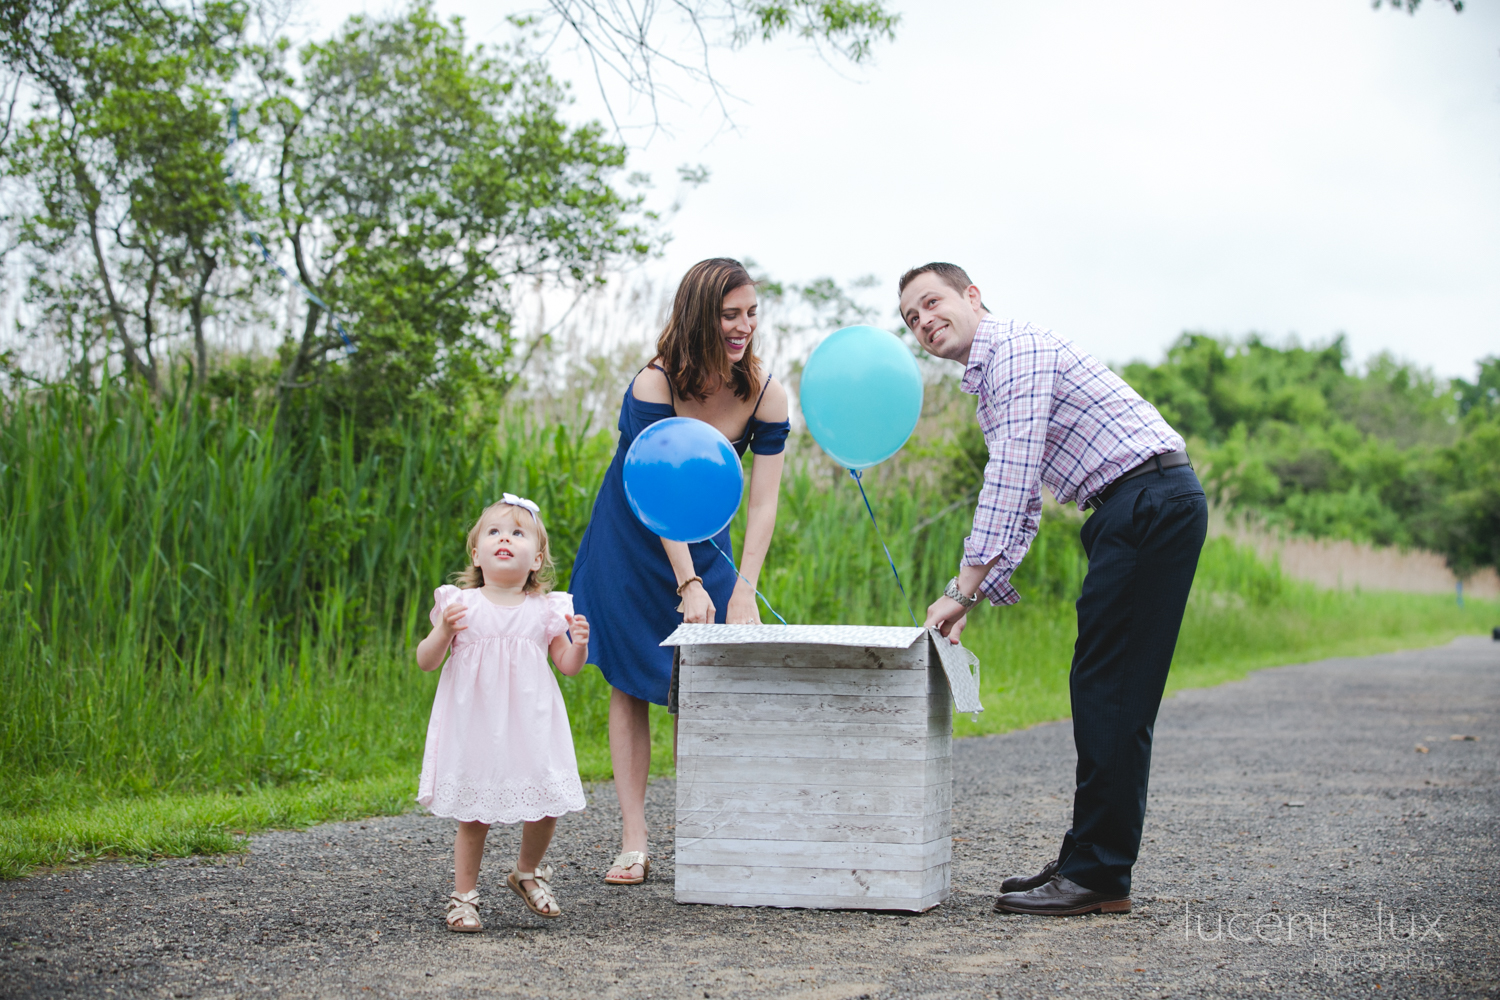 Maternity_Portrait_Photography_Terrapin_Beach_Park_Maryland_Baltimore_Photographer-118.jpg